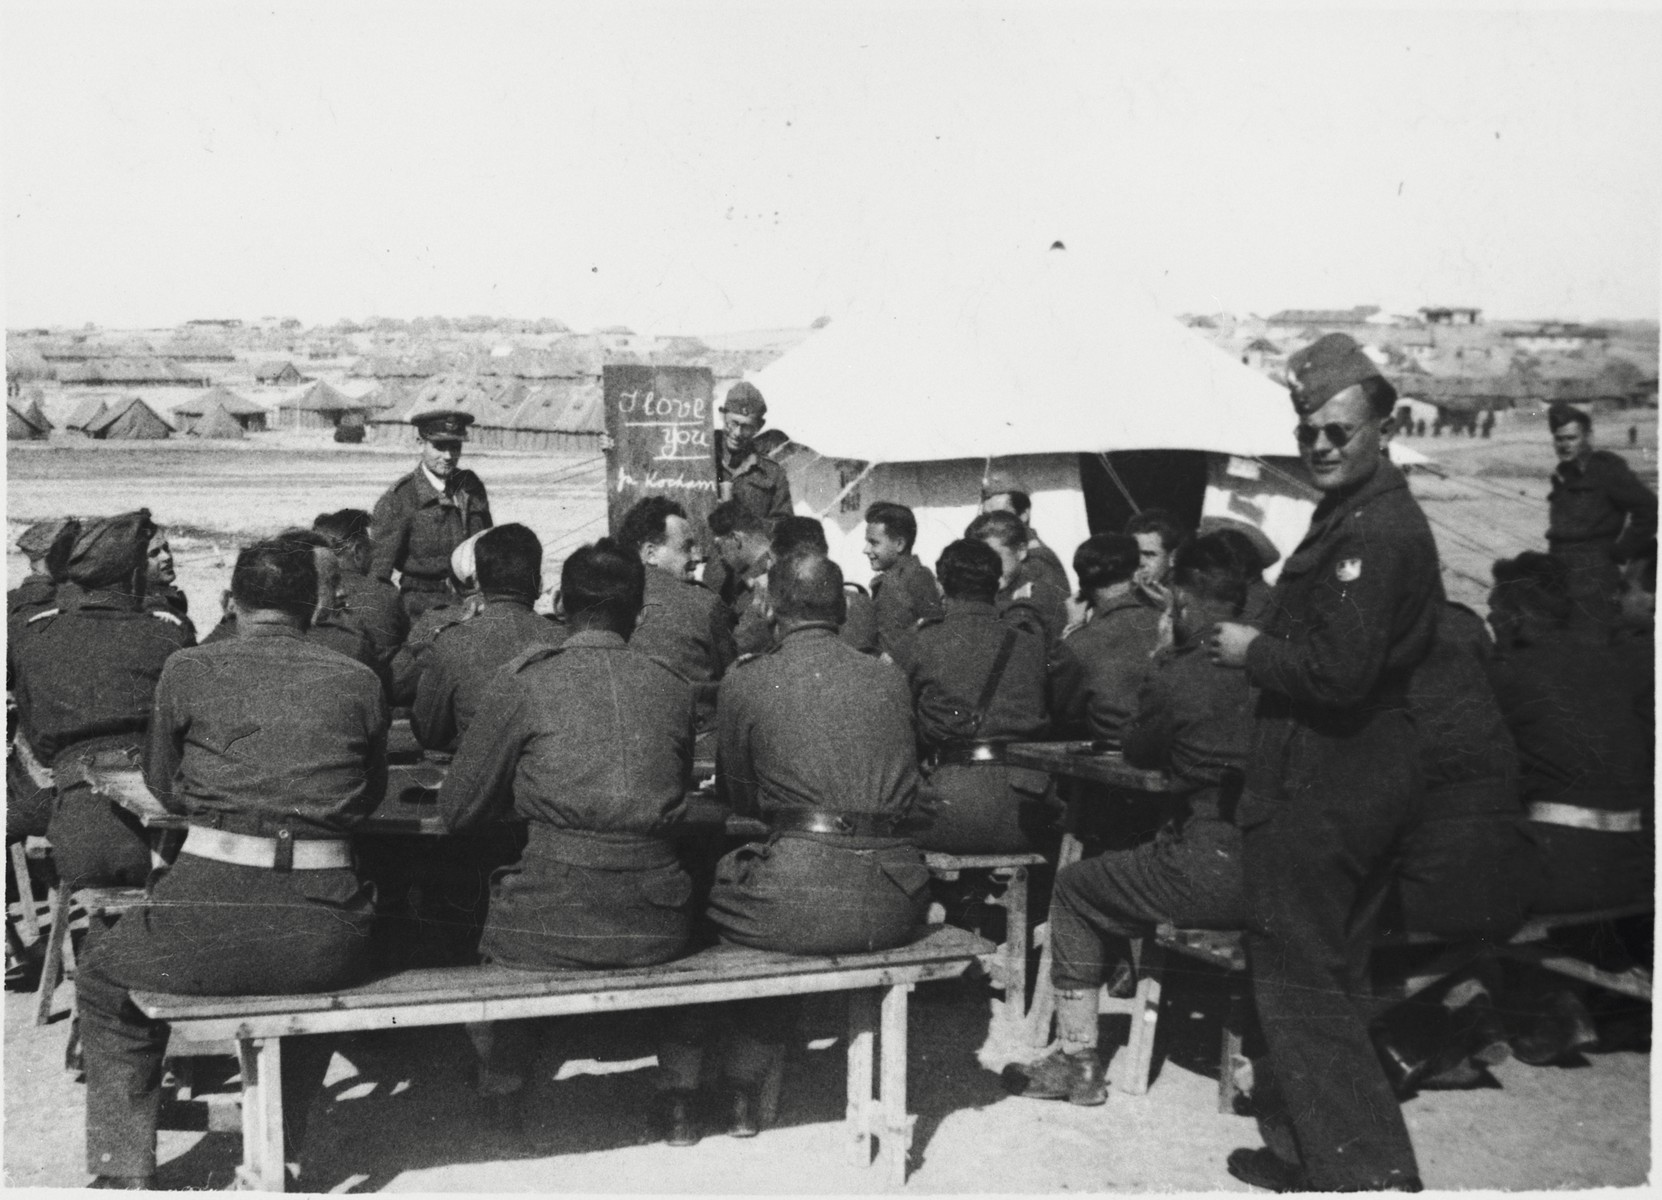 Members of the 2nd Polish Corps (Anders Army) attend an outdoor class at their military base in the Iraqi desert, where they were stationed from the summer of 1942 until the summer of 1943.